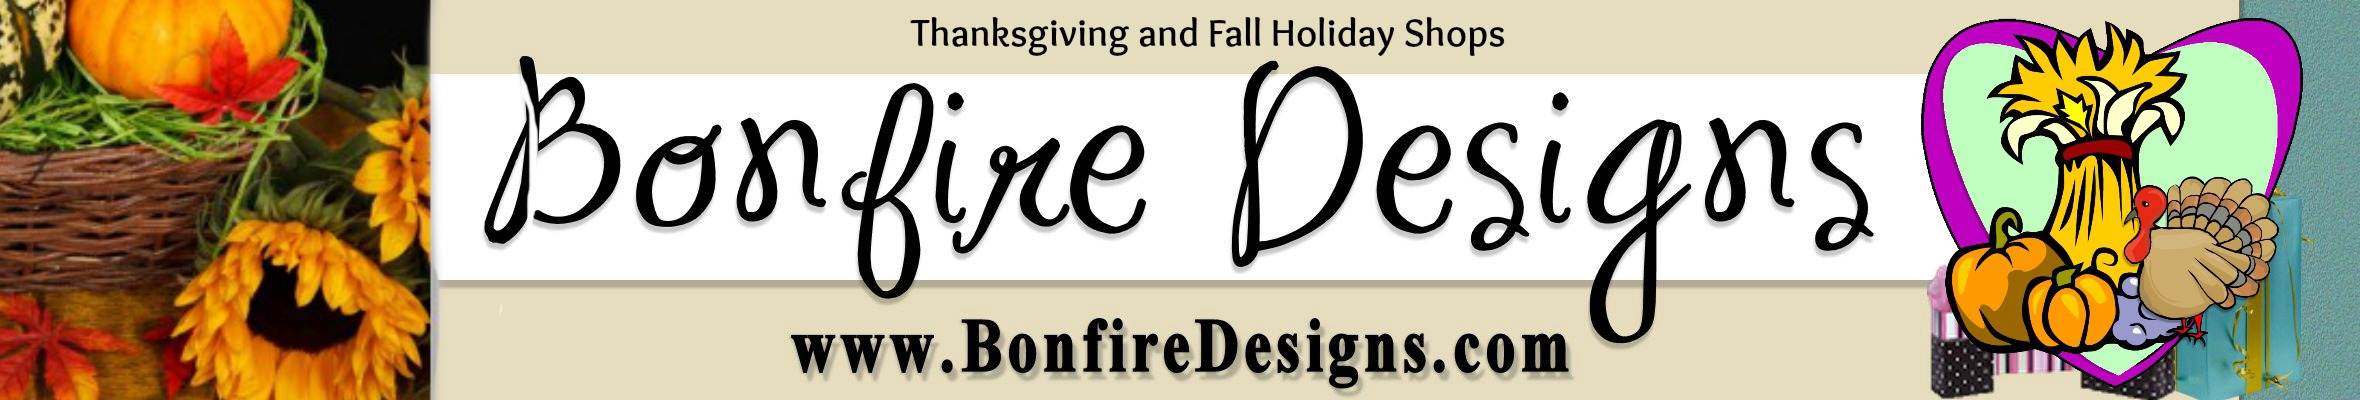 Thanksgiving Gifts and Home Decor